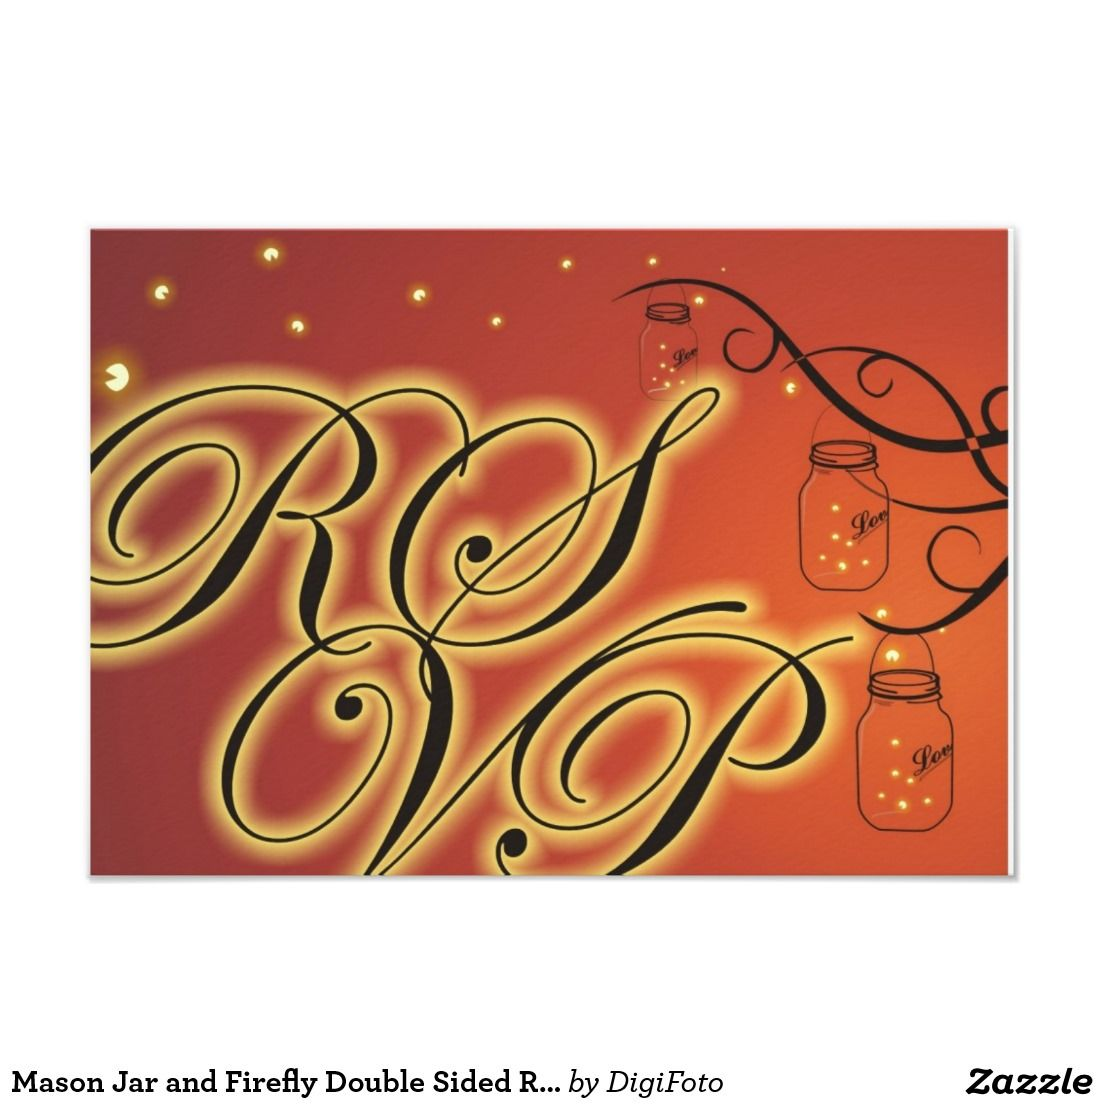 Mason Jar and Firefly Double Sided RSVP Orange Card | Fireflies and ...